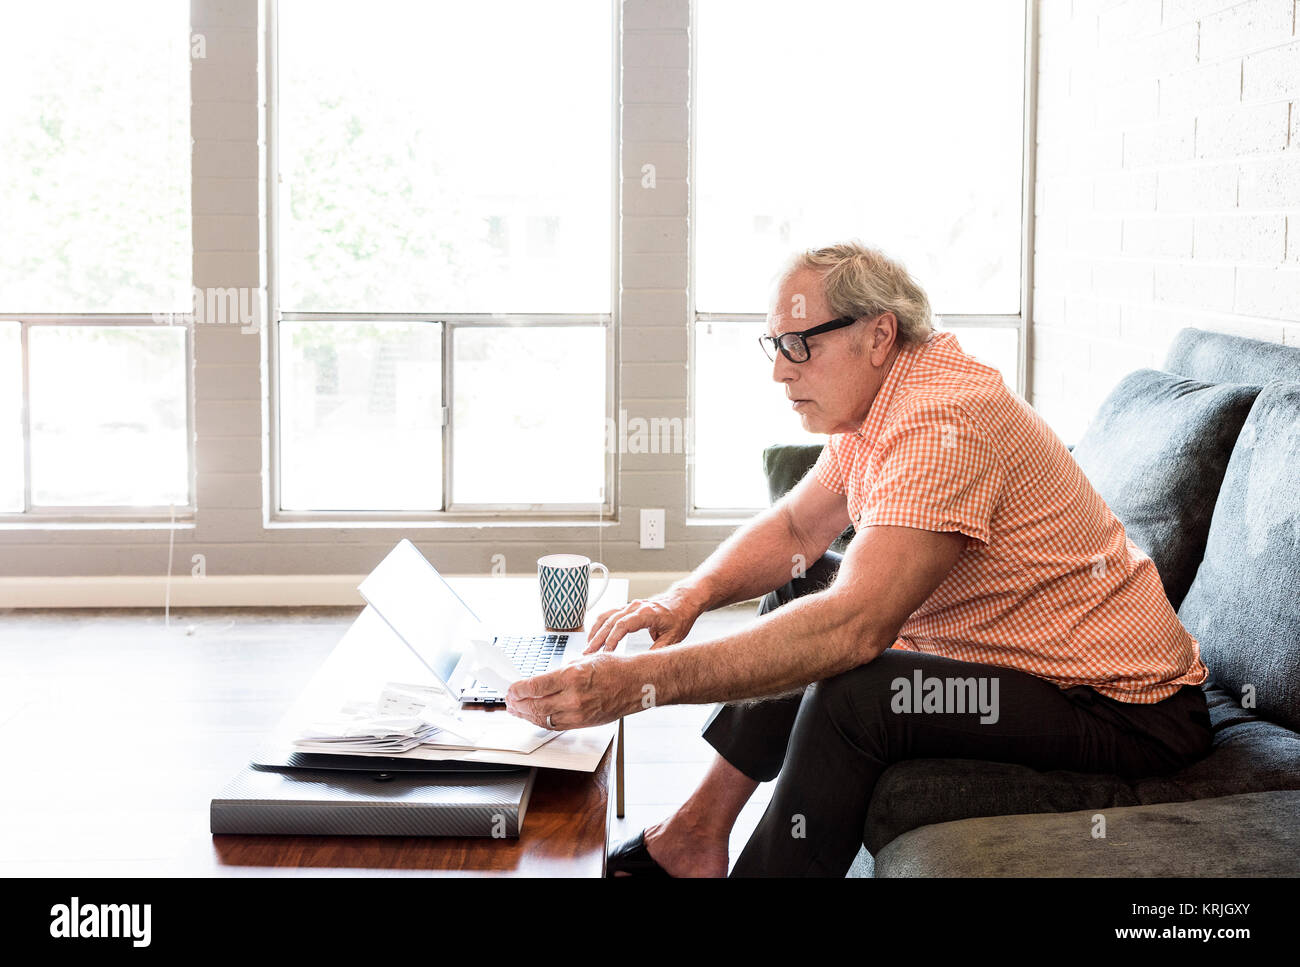 Caucasian man sitting on sofa paying bills with the laptop - Stock Image